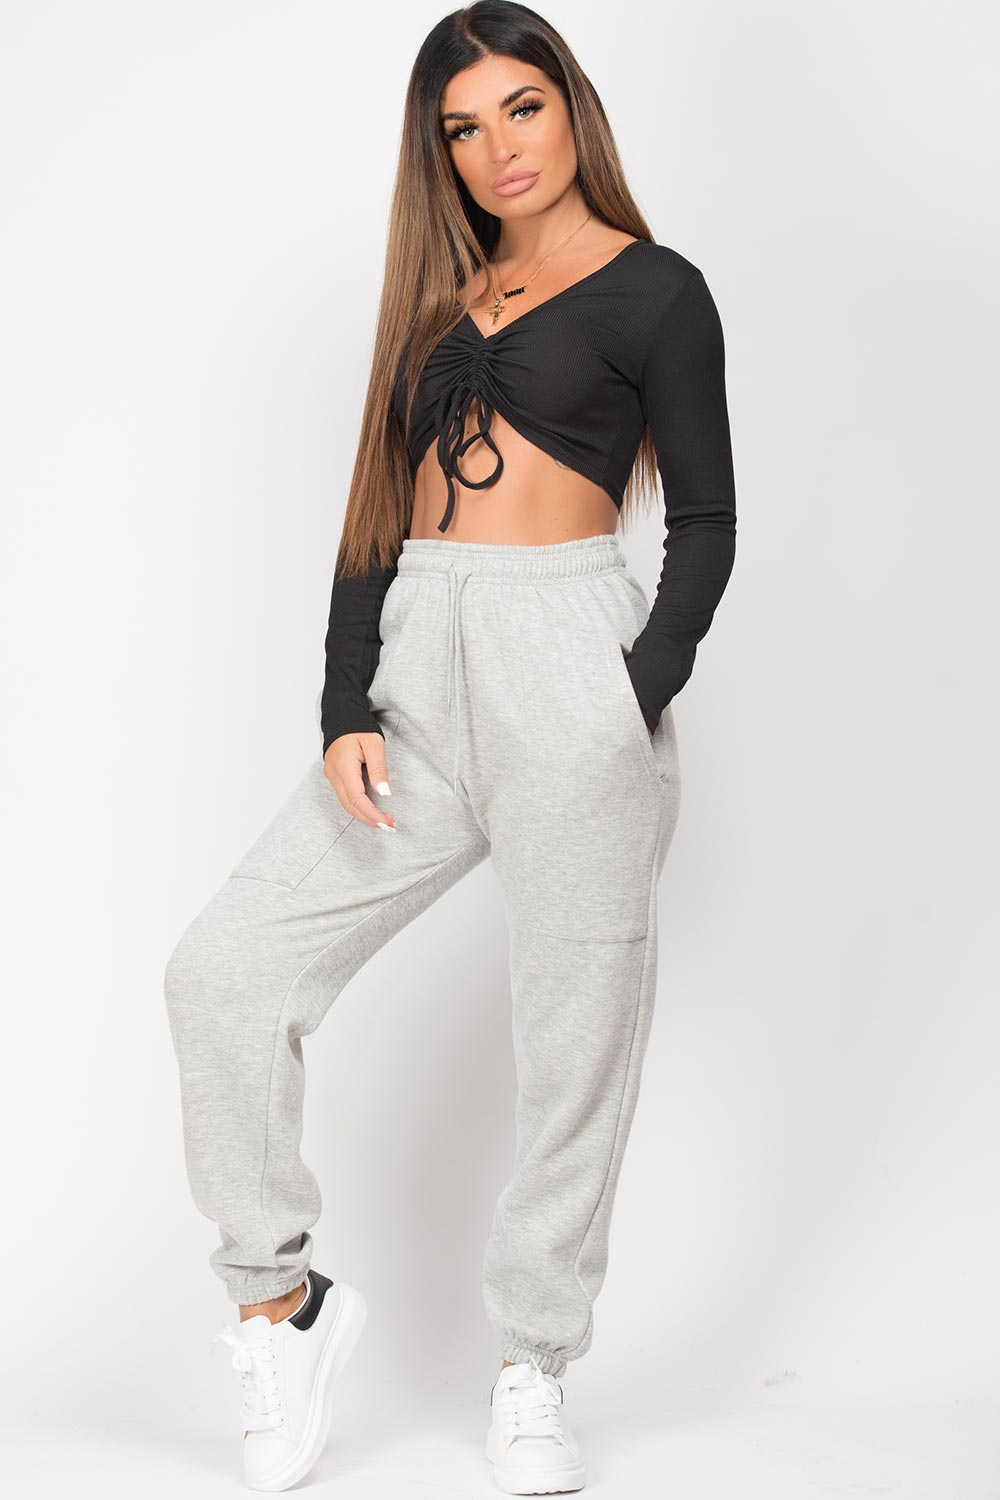 grey jogging bottoms womens